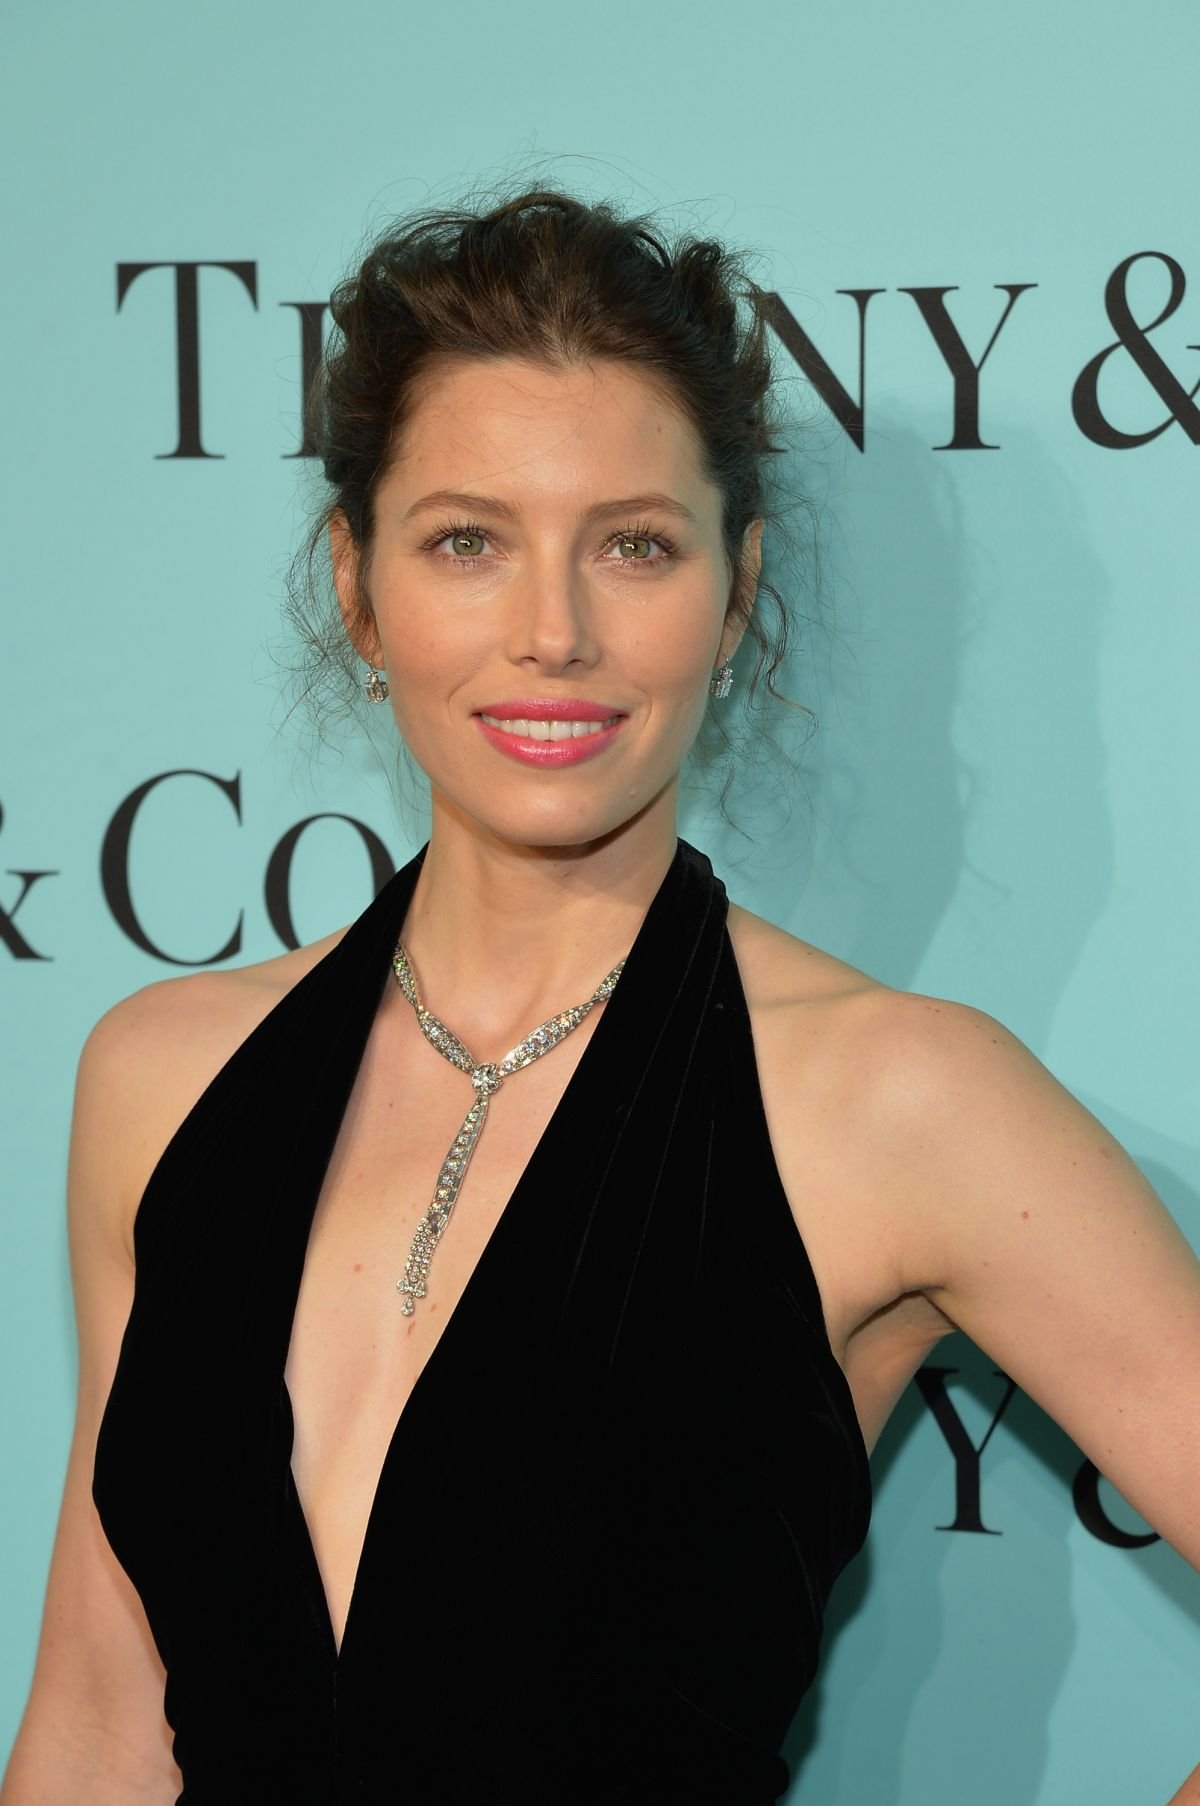 JESSICA BIEL at Tiffany Debut of 2014 Blue Book in New York